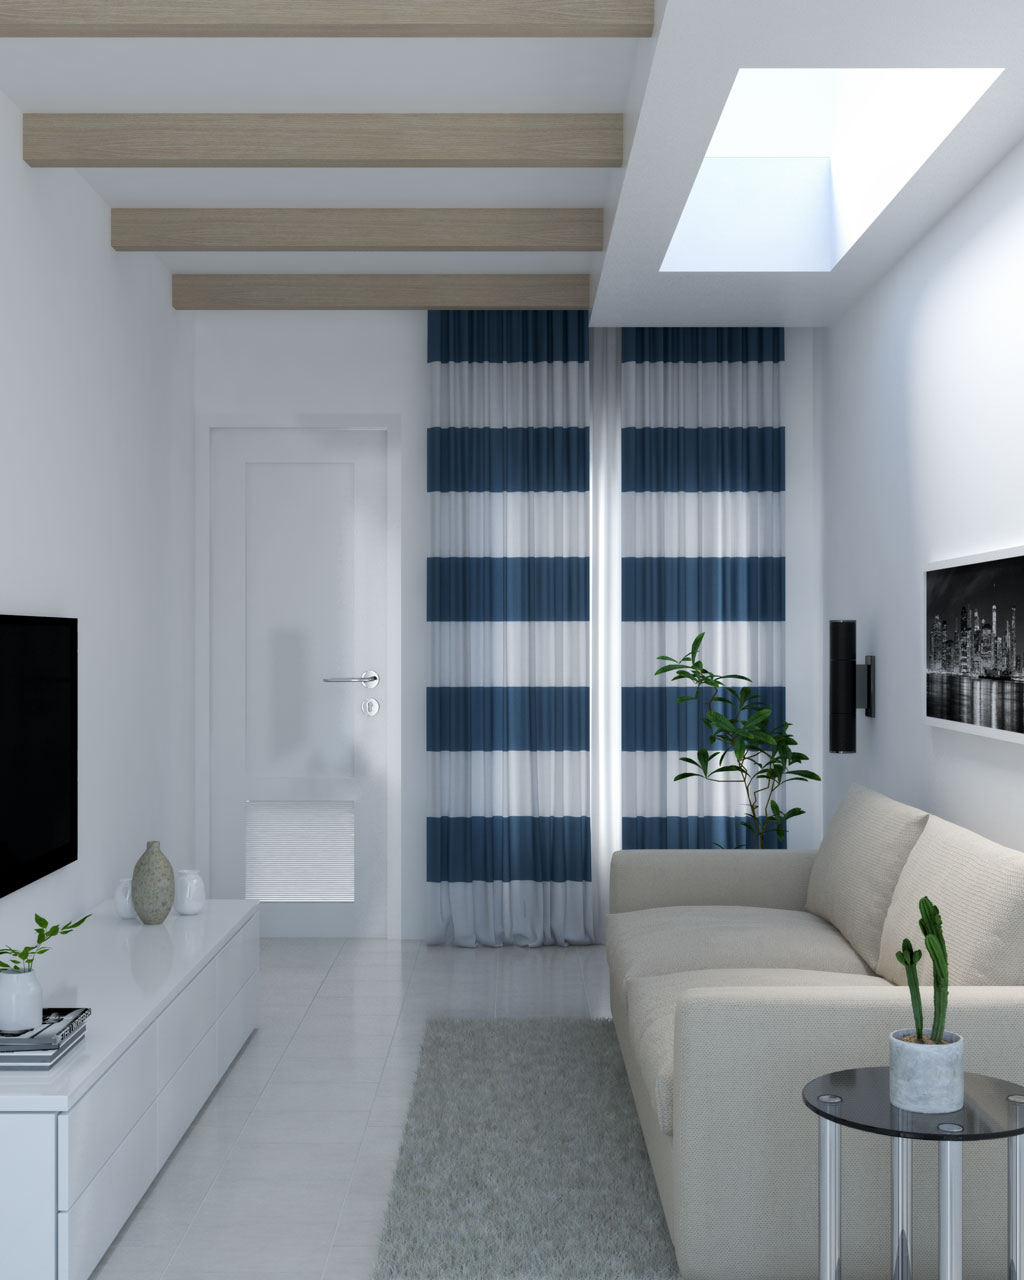 Blue and white curtains with large horizontal pattern